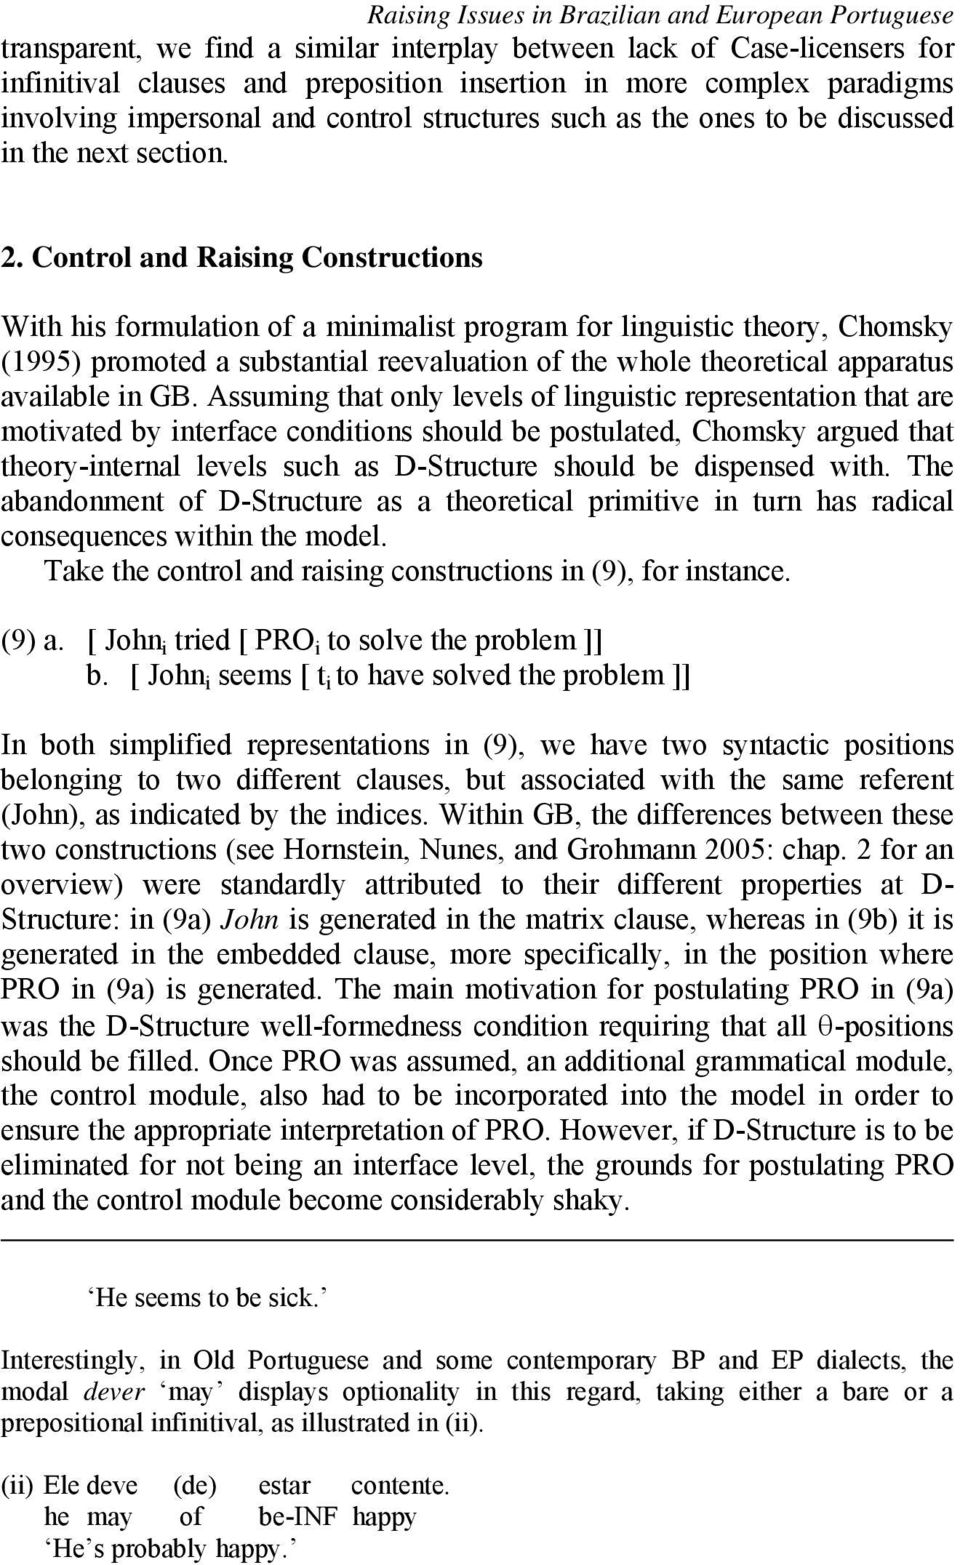 Control and Raising Constructions With his formulation of a minimalist program for linguistic theory, Chomsky (1995) promoted a substantial reevaluation of the whole theoretical apparatus available